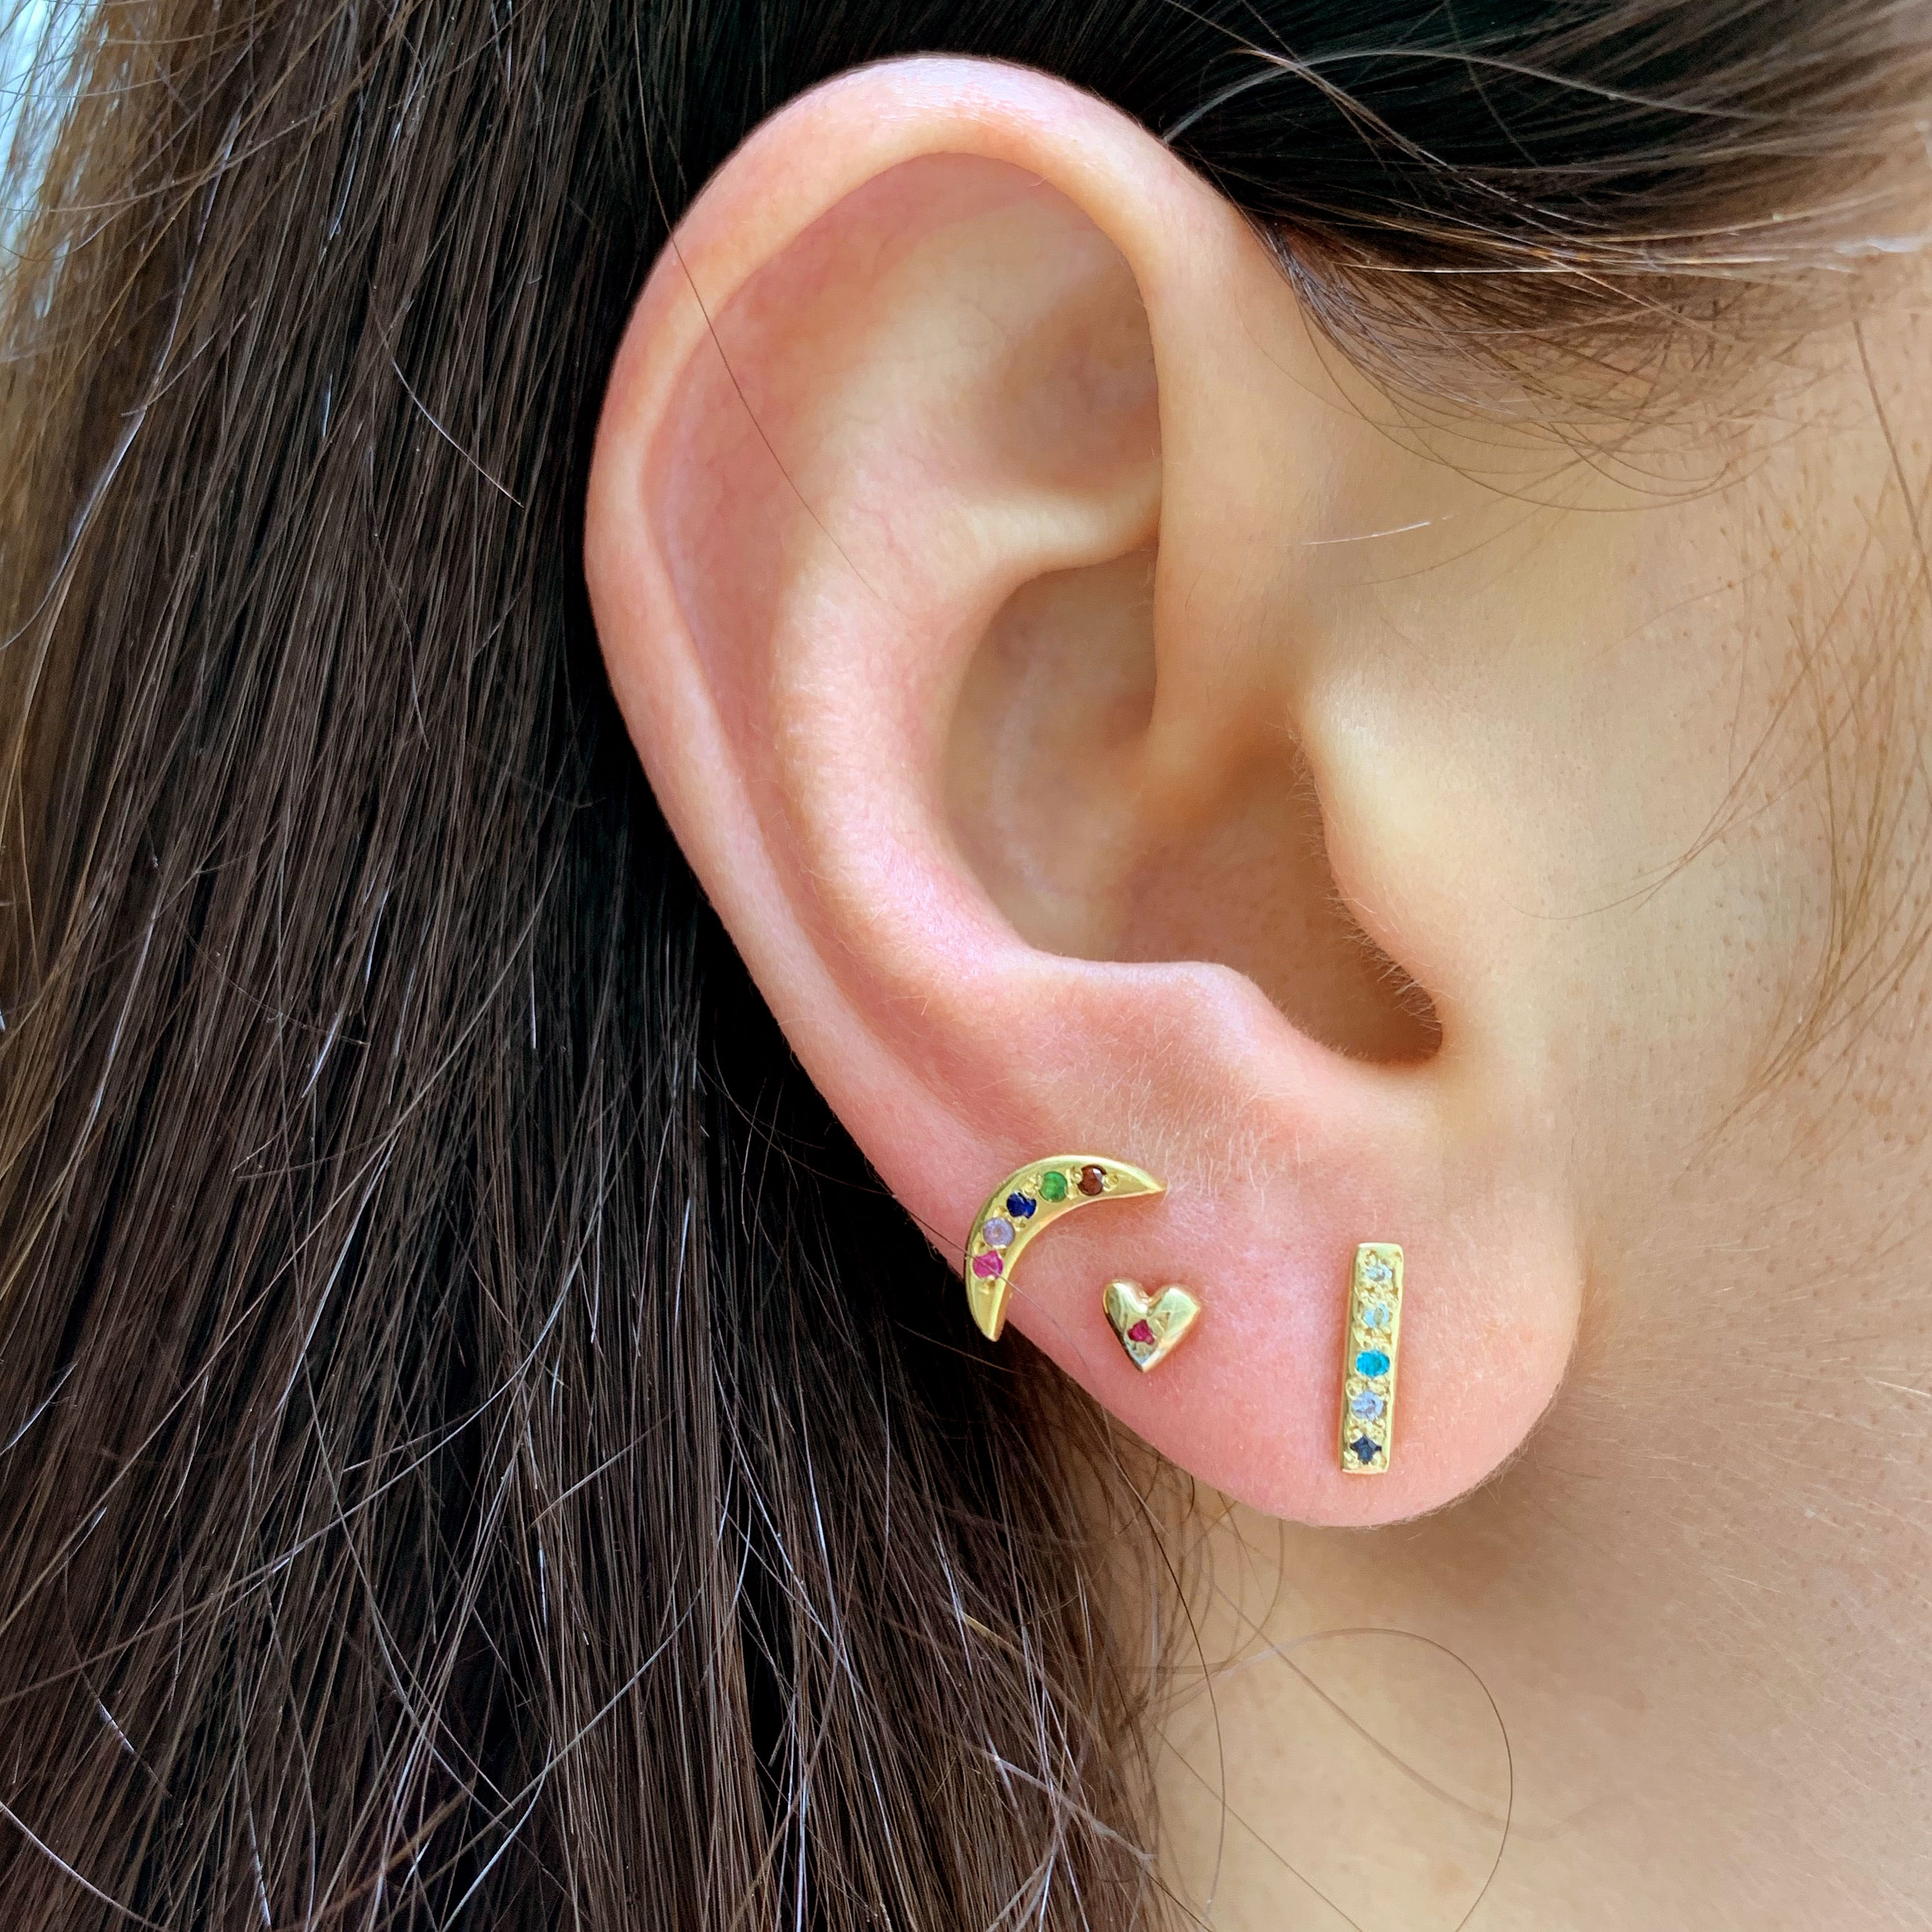 Wearing tiny mini stud earrings in yellow gold